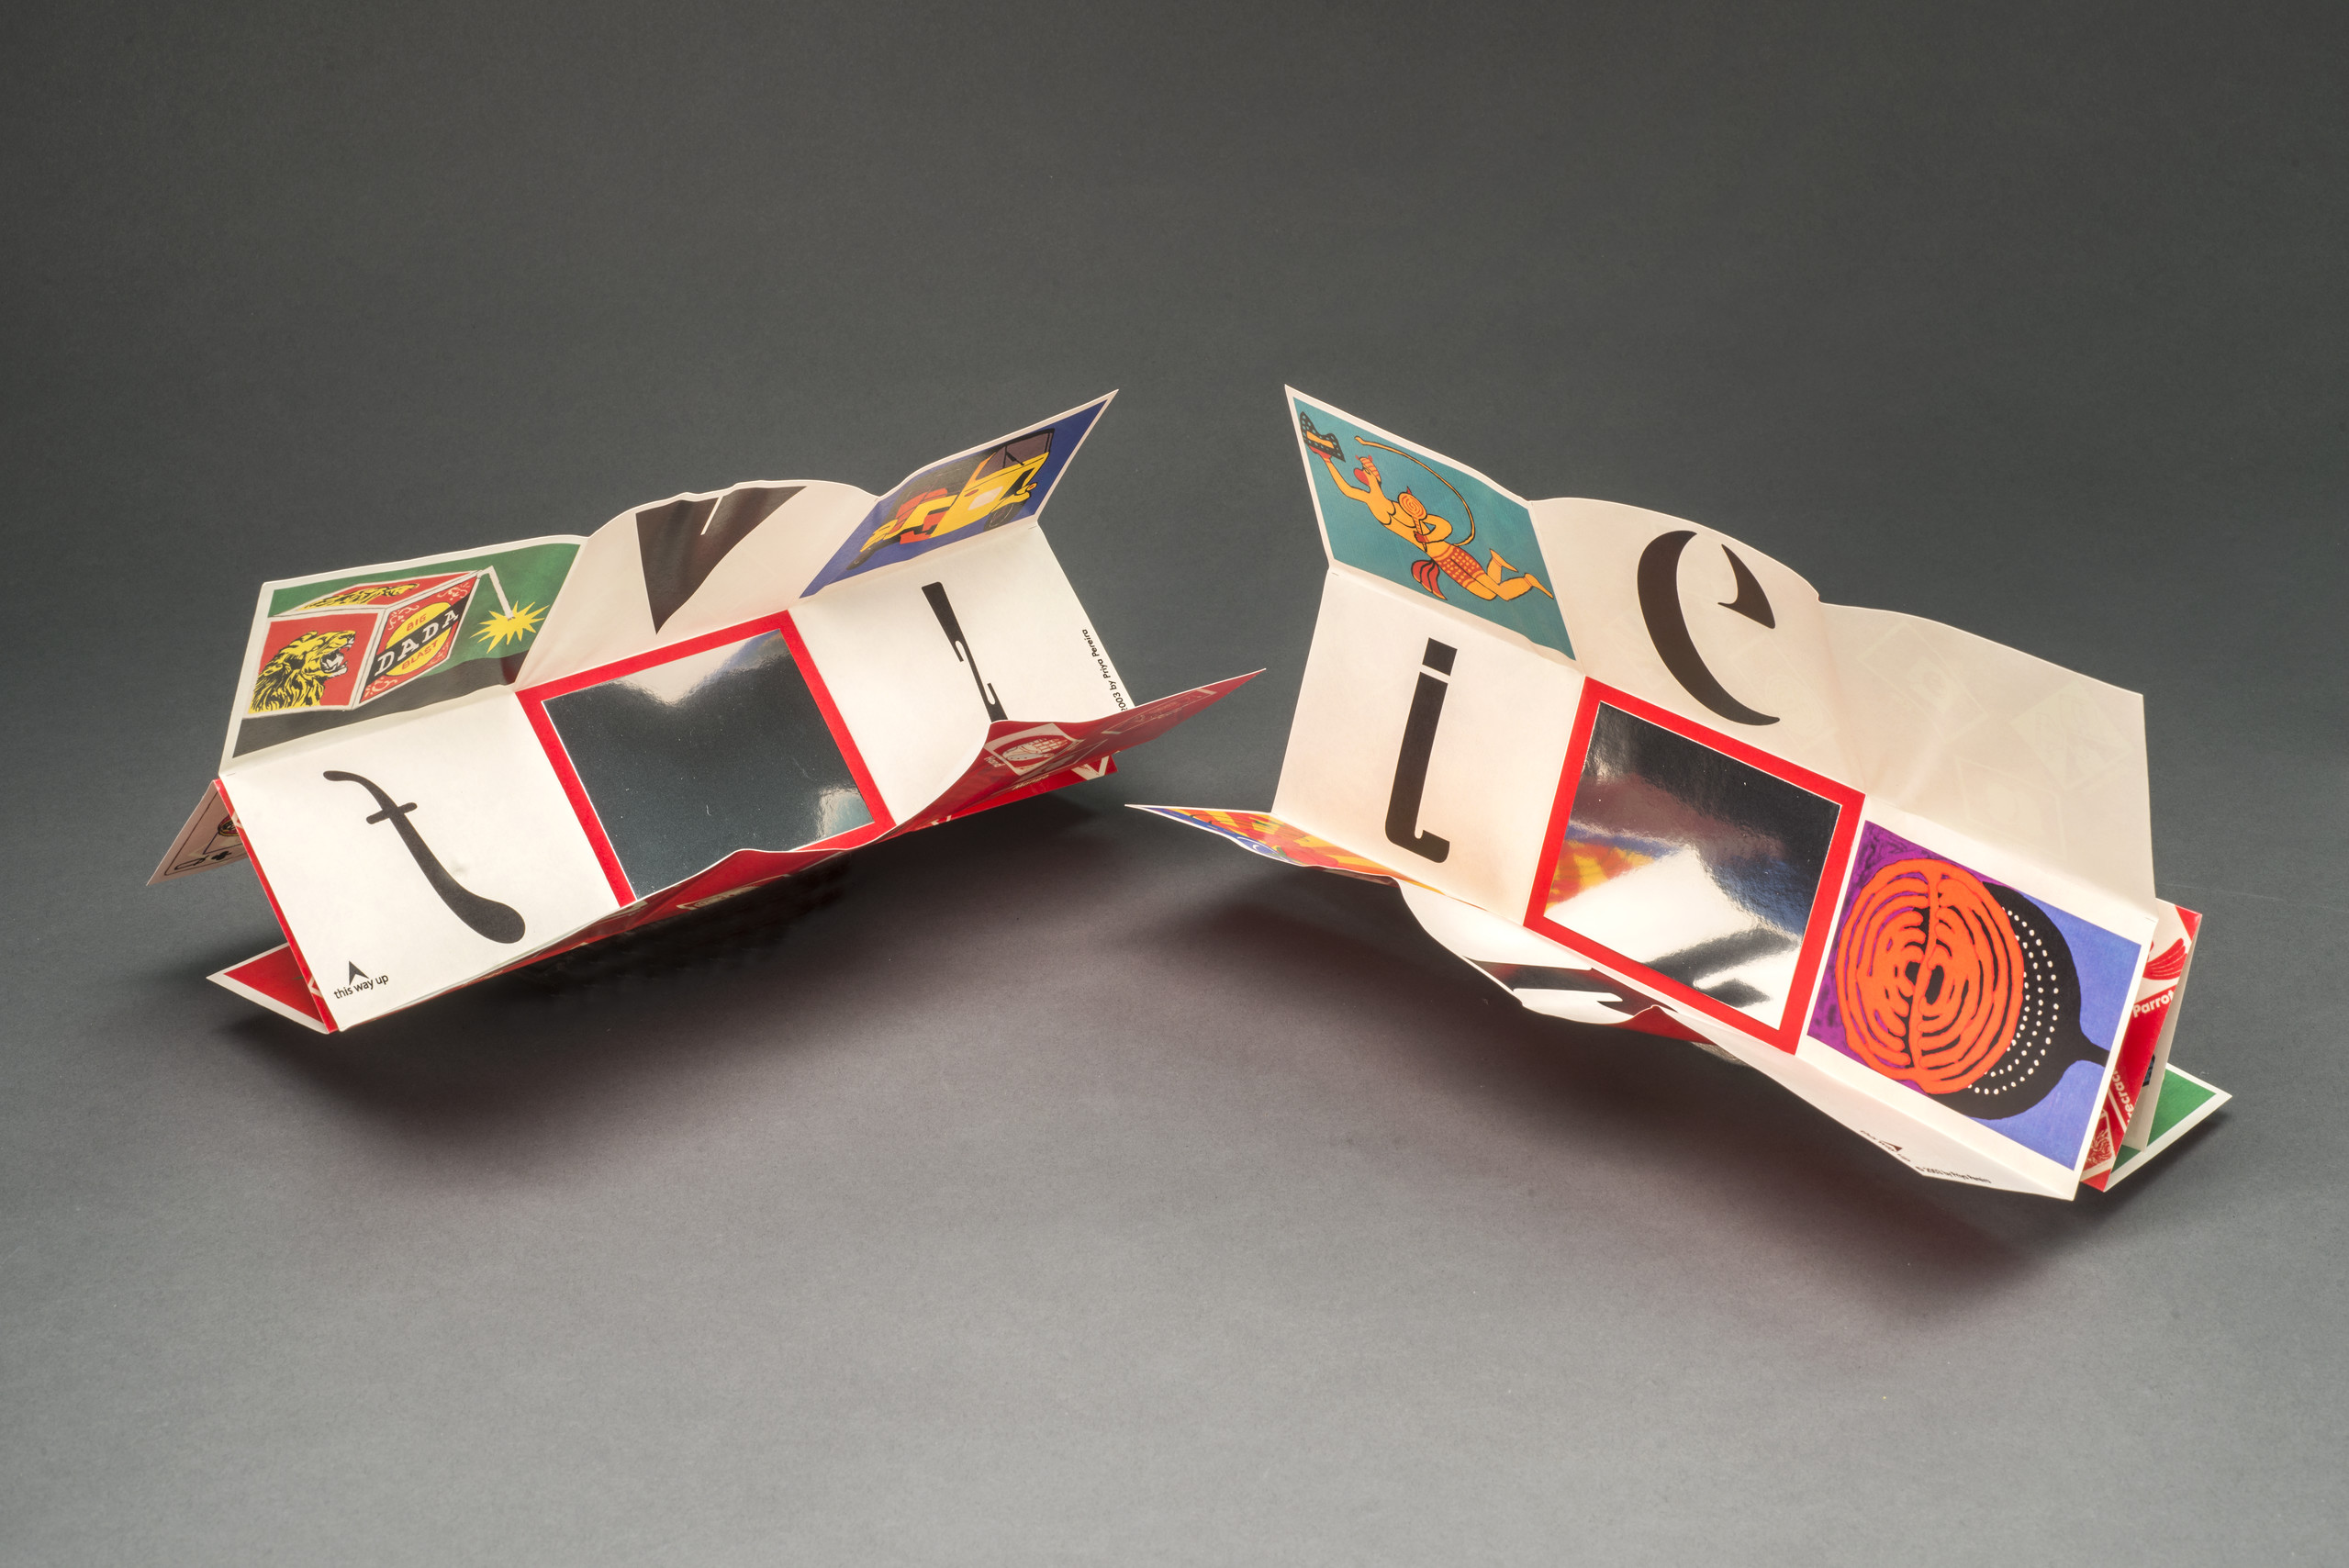 Two artists books with intricate folds and colorful panels sit side-by-side.